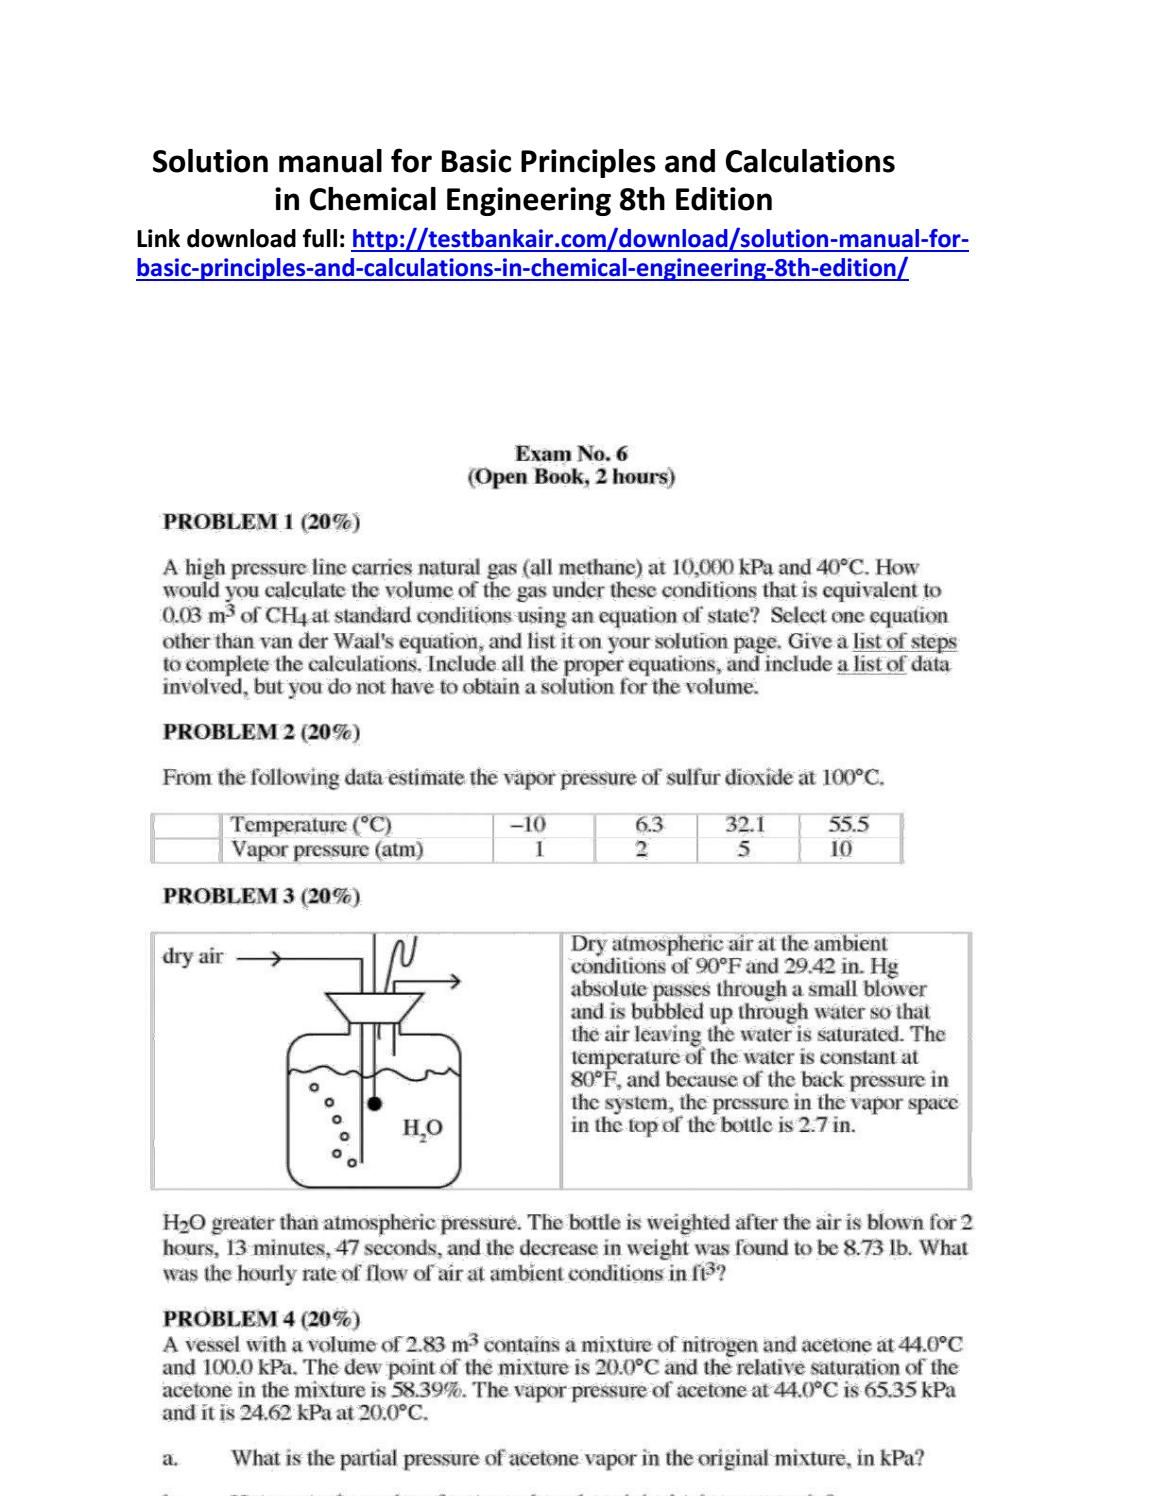 solution manual for basic principles and calculations in chemical rh pinterest com Absolute Solutions Naperville IL Absolute Solutions San Diego